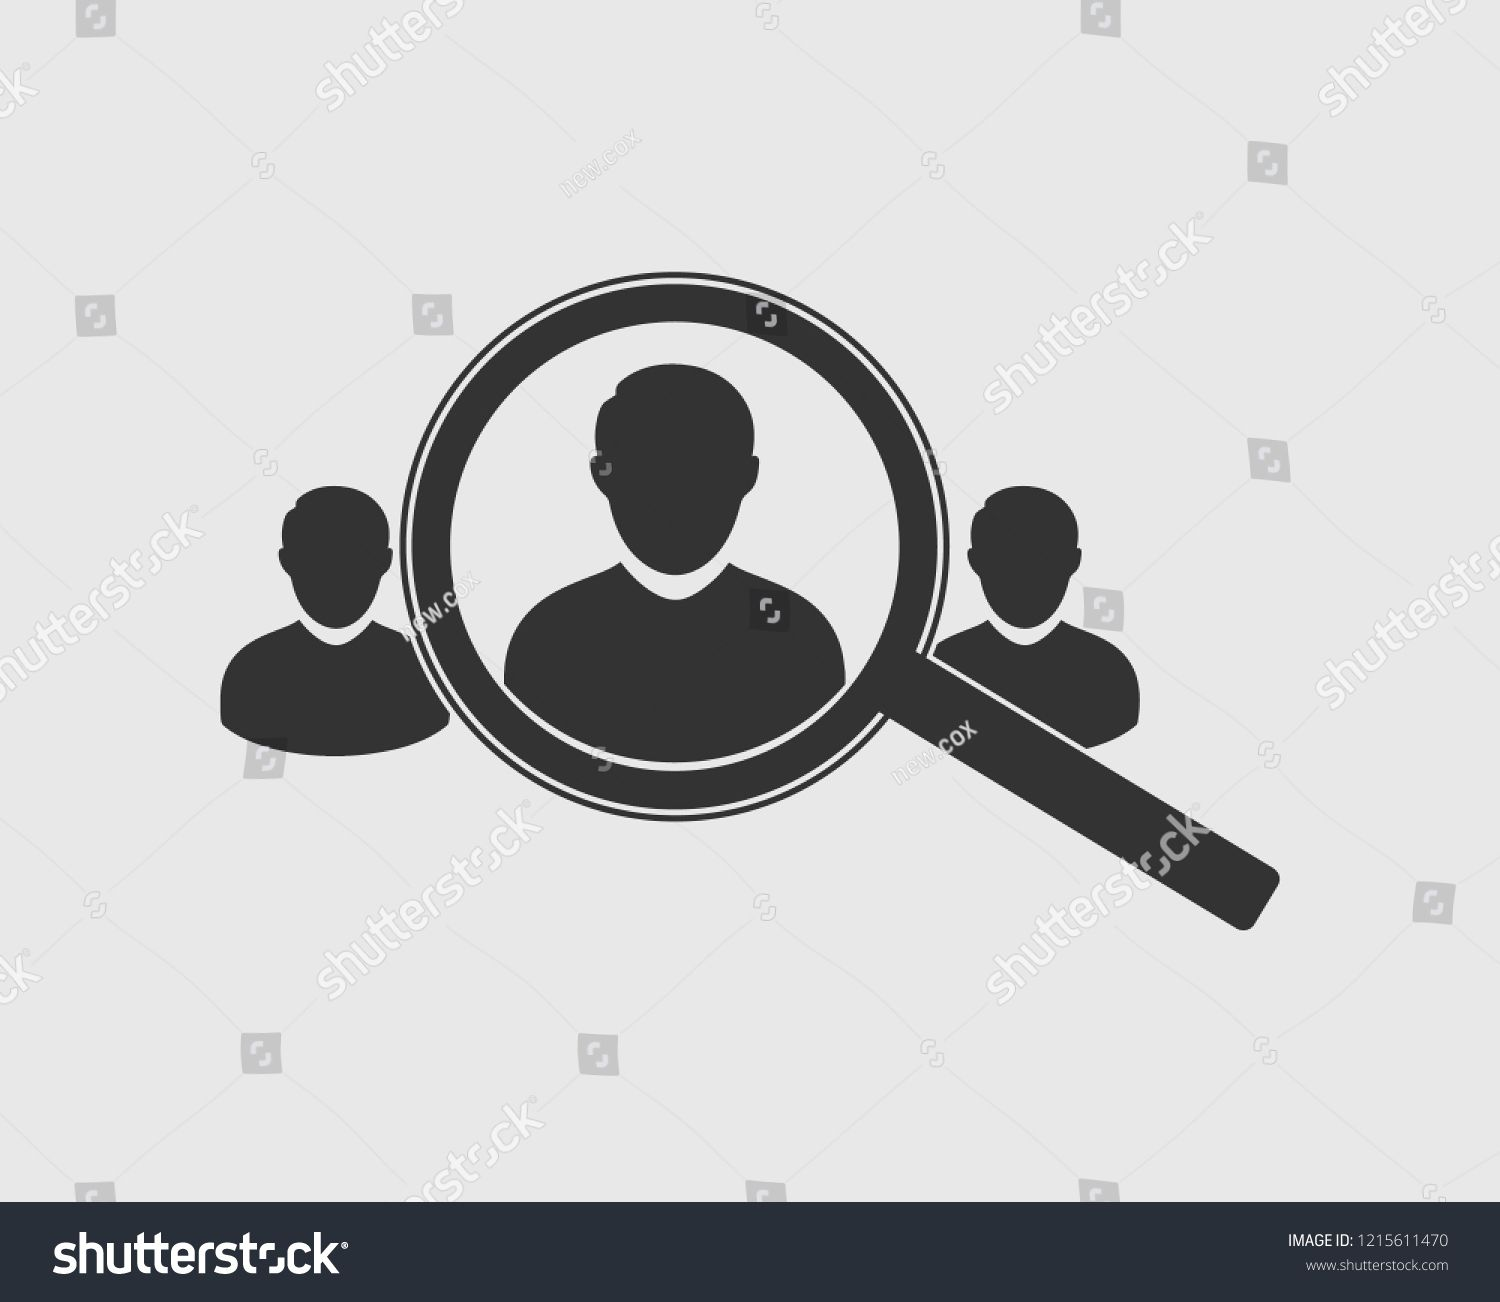 Target audience icon with magnifying glass. Flat Icon